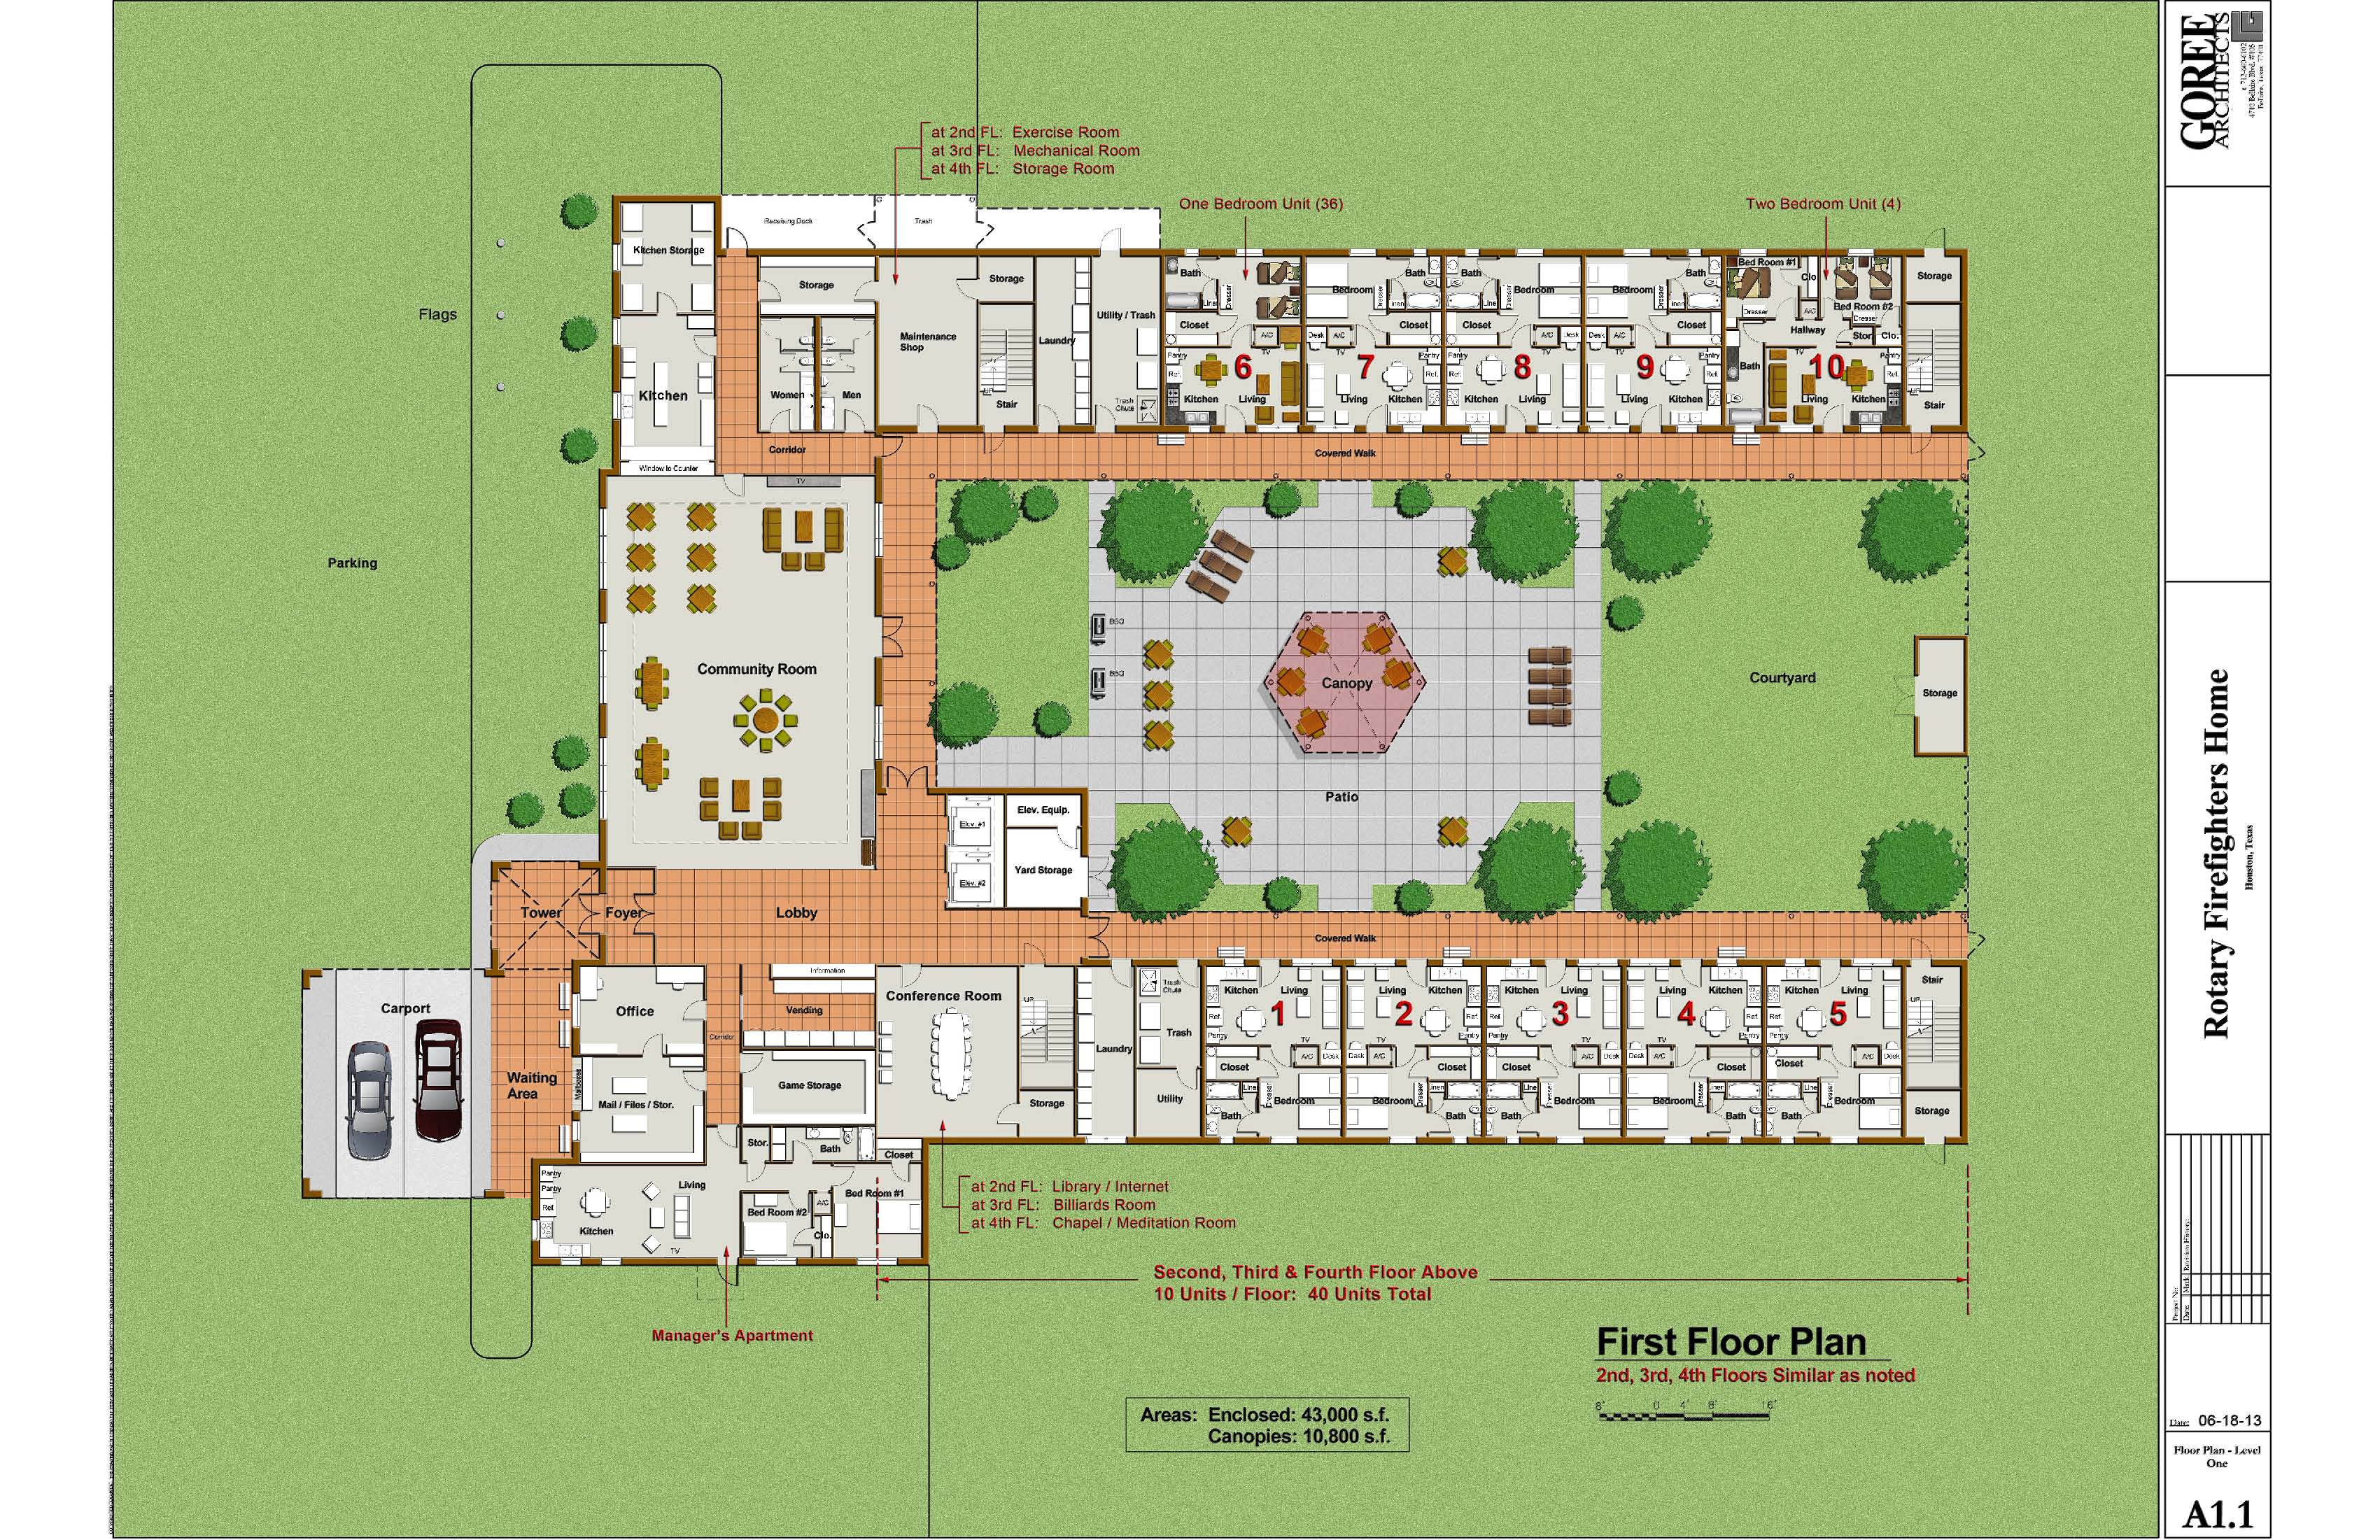 Home page rotary club of university area houston Rest house plan